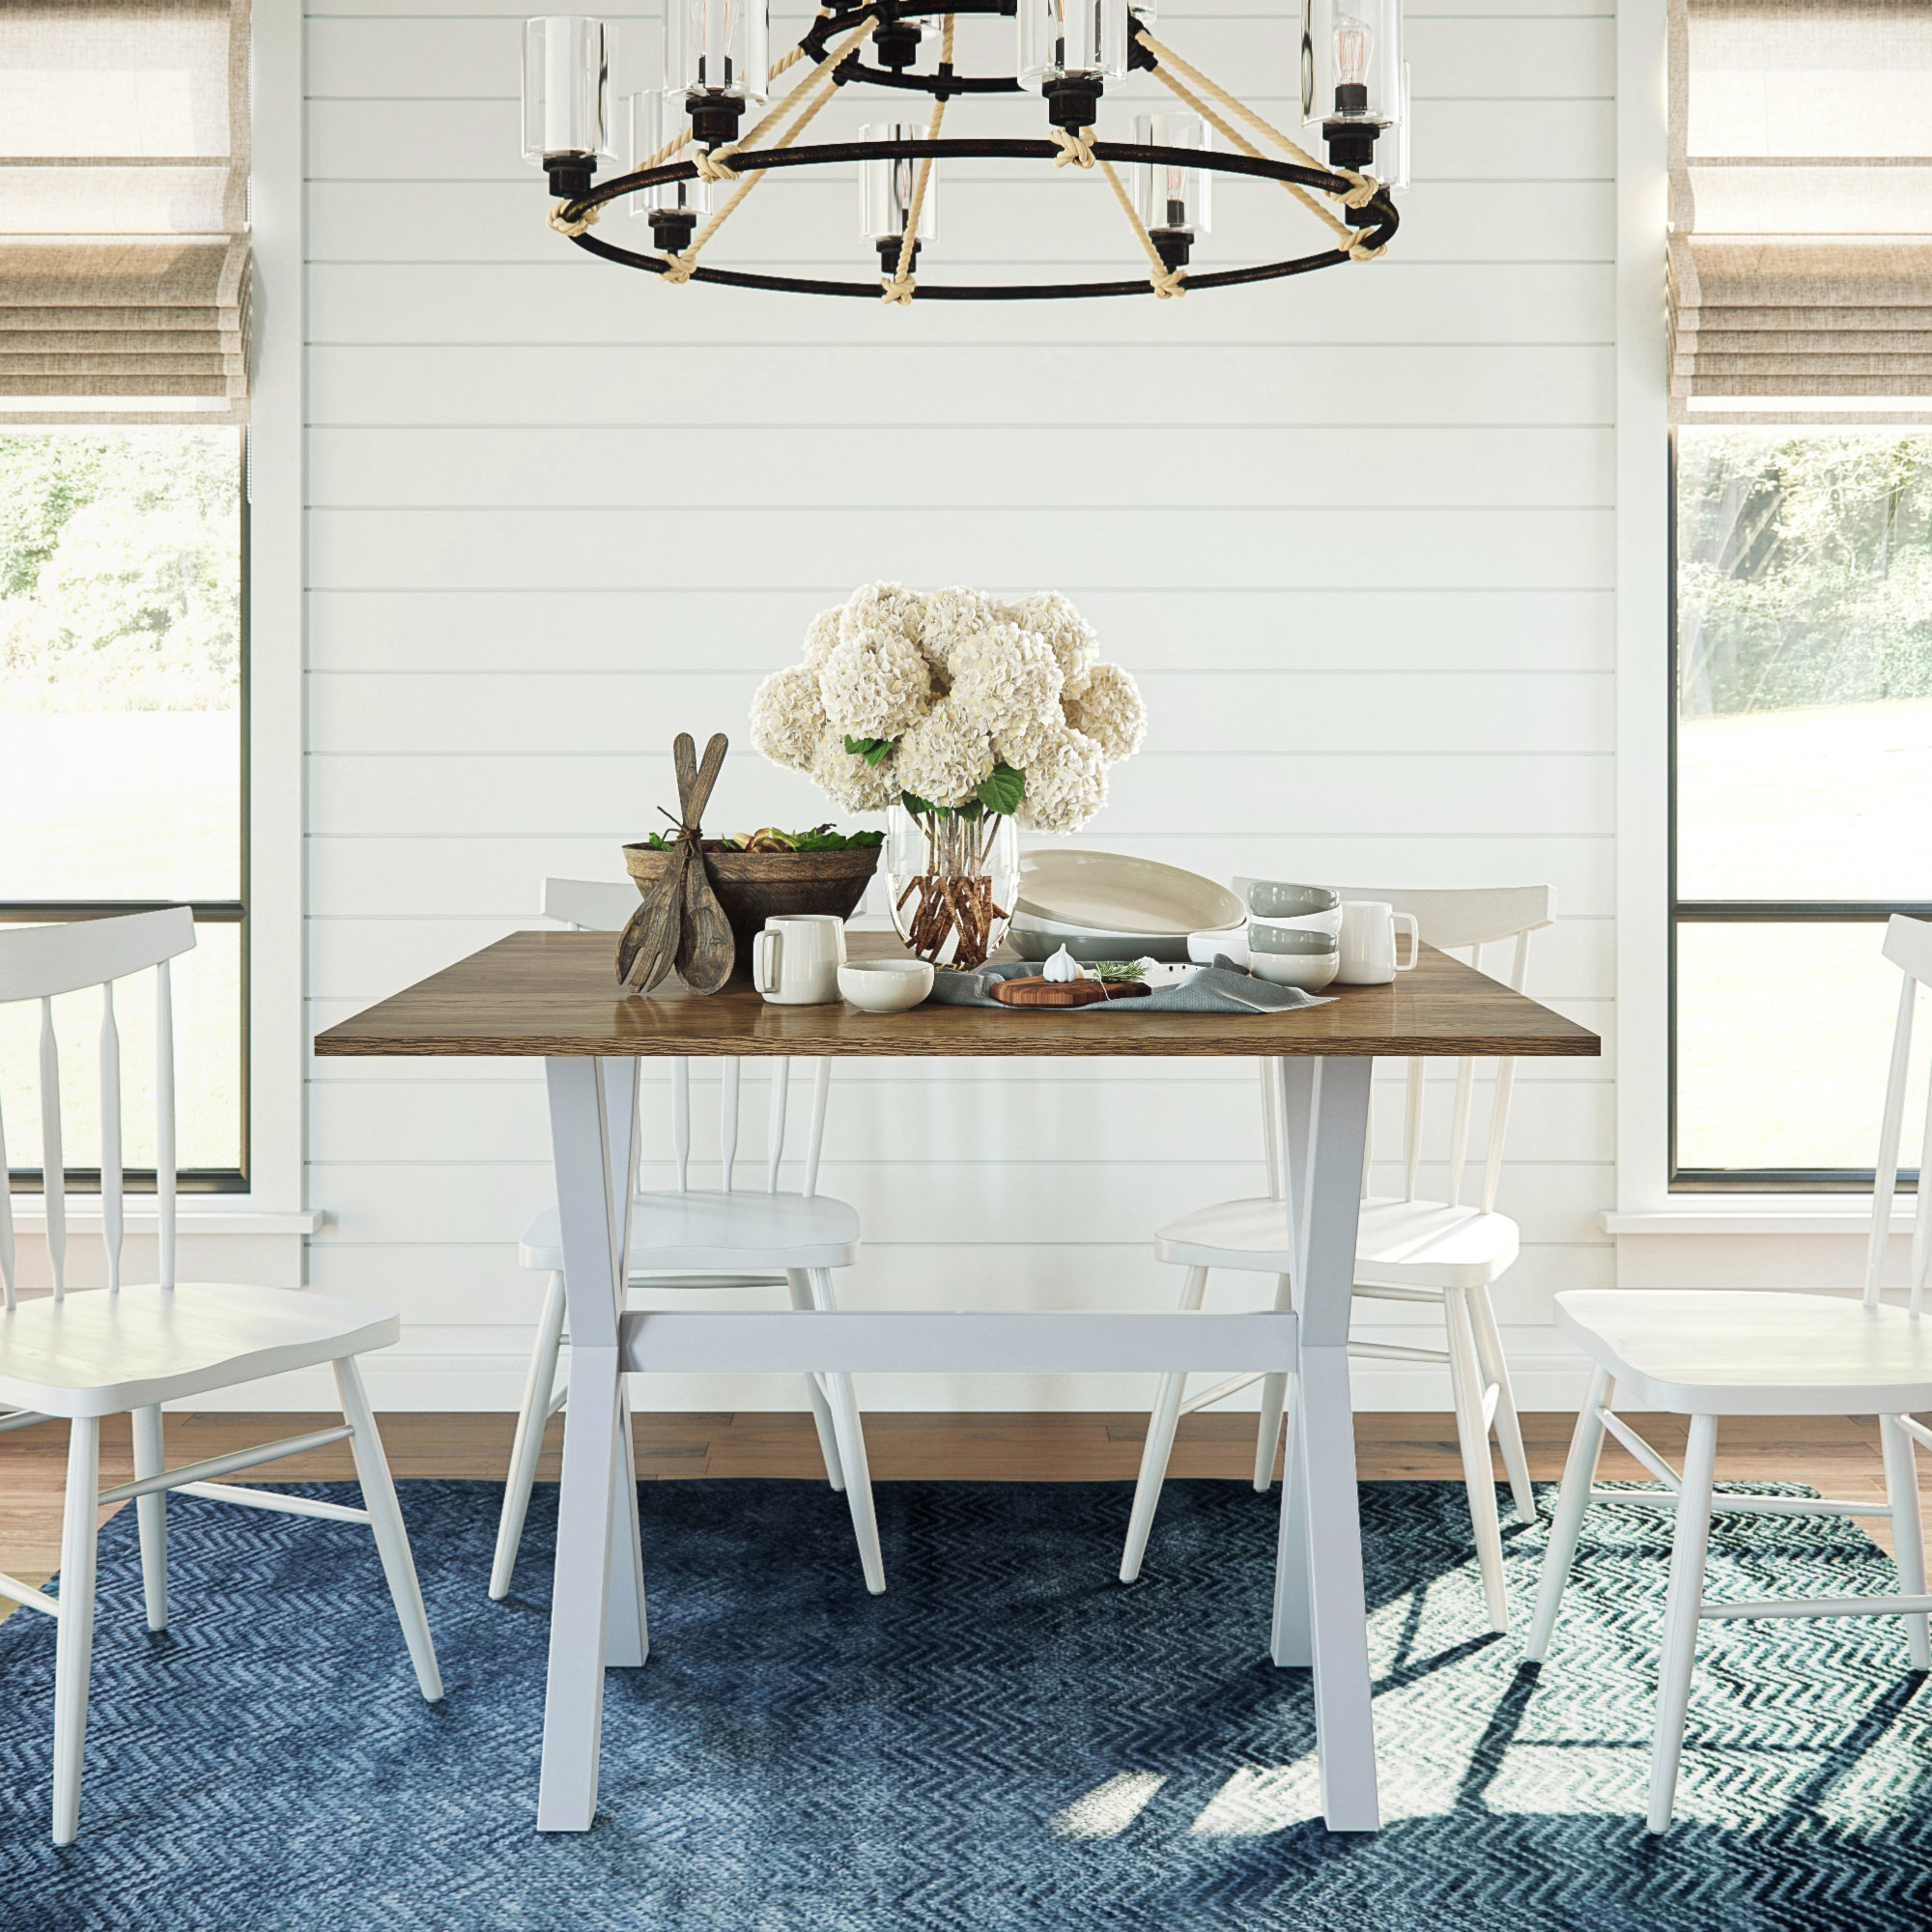 latitude run warthen drop leaf solid wood dining table reviews accent reclaimed barn door outdoor furniture perth yellow lamp base carpet transition trim tiffany rooster shade